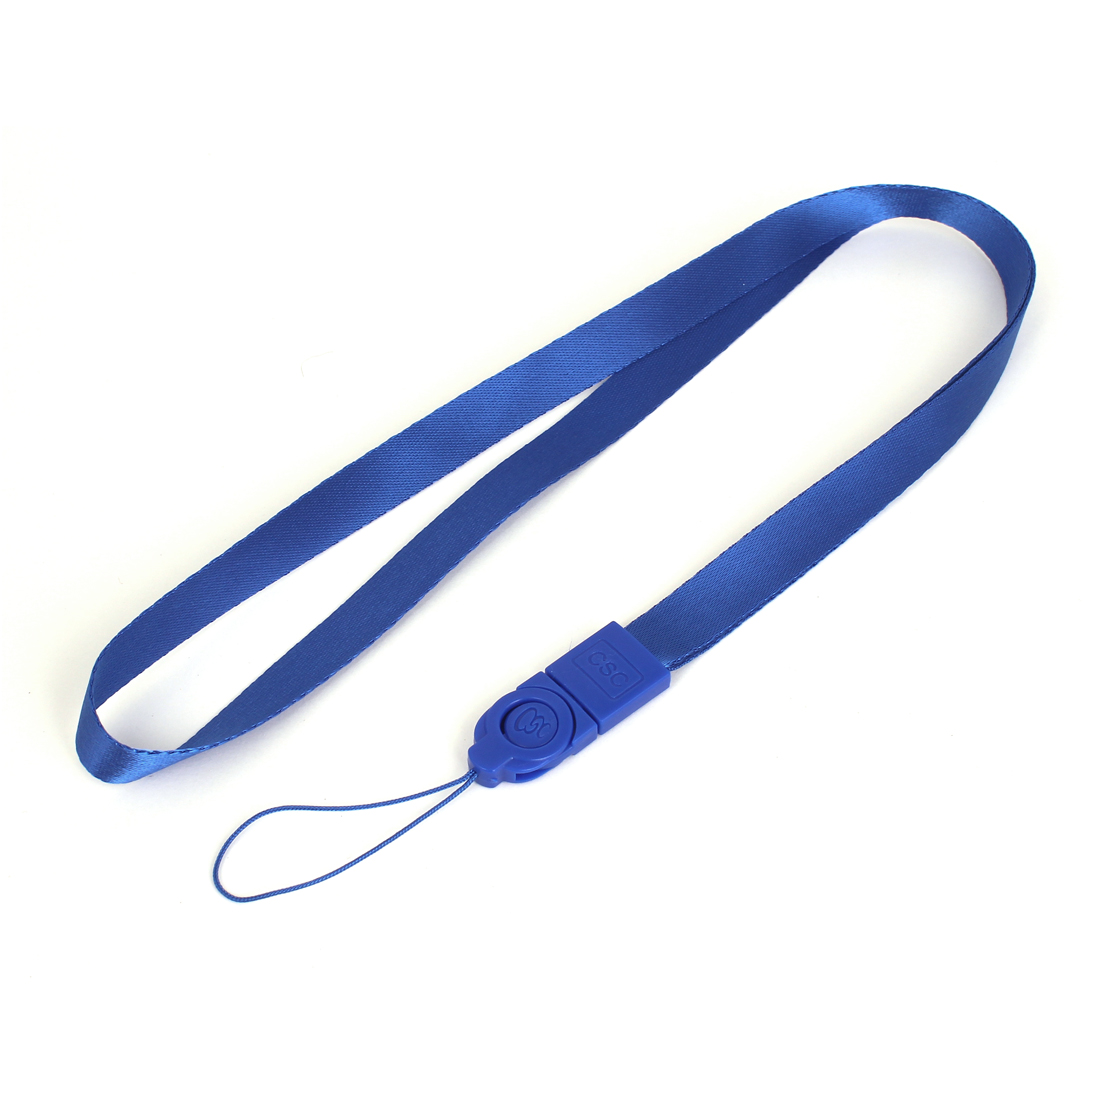 Unique Bargains Plastic Polyester Neck Strap ID Card Badge Holder Lanyard School Office Bank Students Stationery Blue